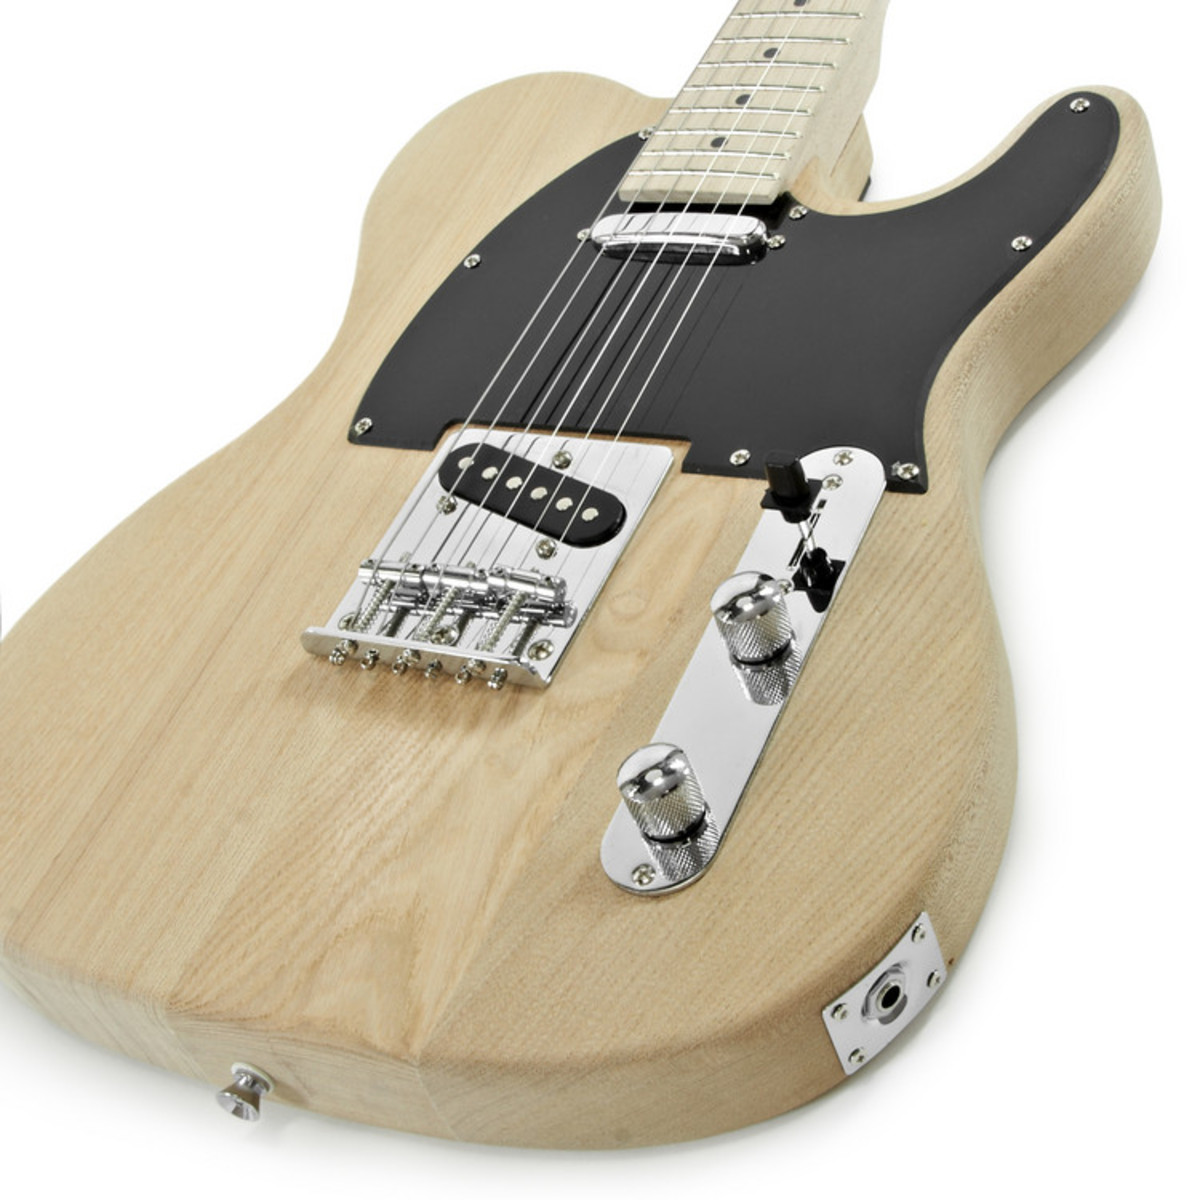 knoxville electric guitar diy kit ash body at gear4music. Black Bedroom Furniture Sets. Home Design Ideas